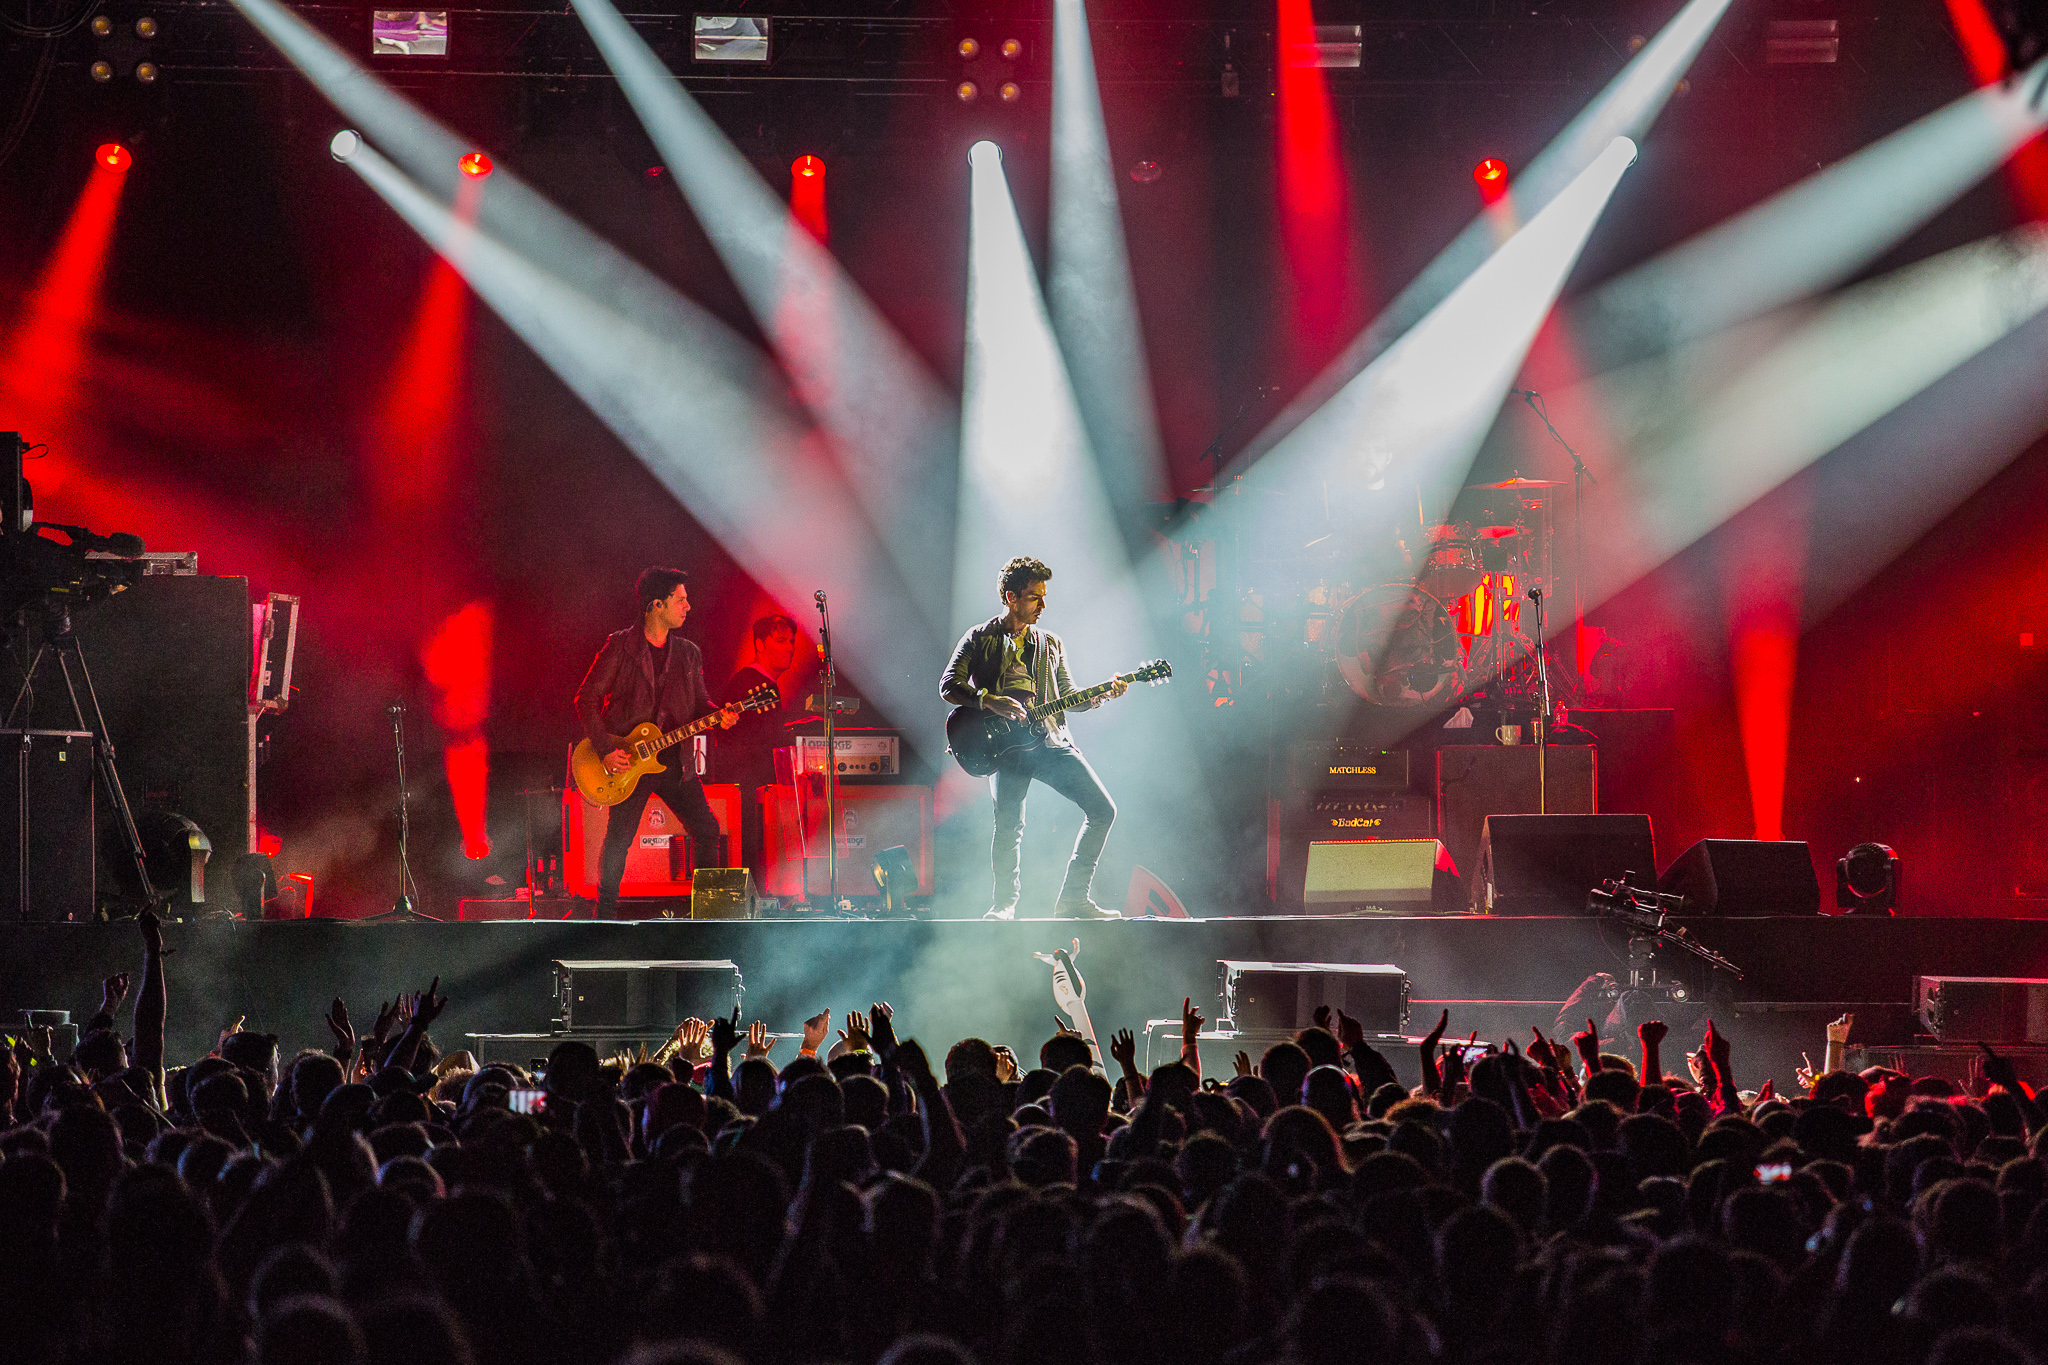 STEREOPHONICS CLOSING FRIDAY NIGHT AT KENDAL CALLING 2017 - 28/07/2017  PICTURE BY: JODY HARTLEY